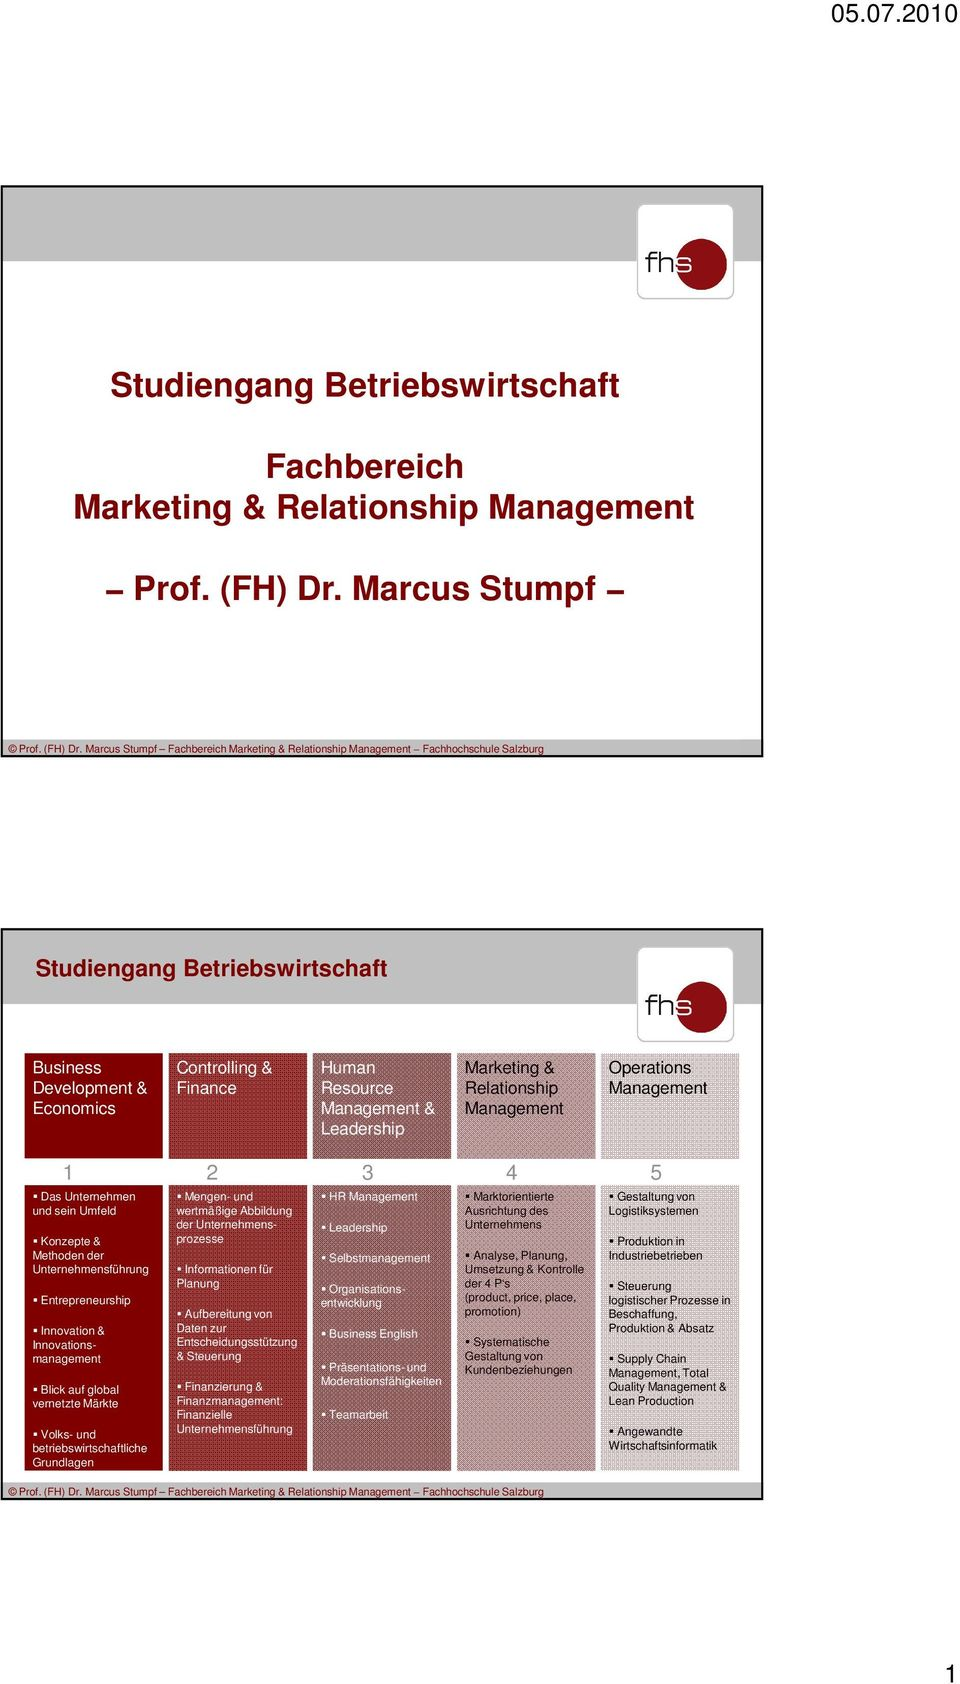 Marcus Stumpf Fachbereich Marketing & Relationship Management Fachhochschule Salzburg Studiengang Betriebswirtschaft Business Development & Economics Controlling & Finance Human Resource Management &